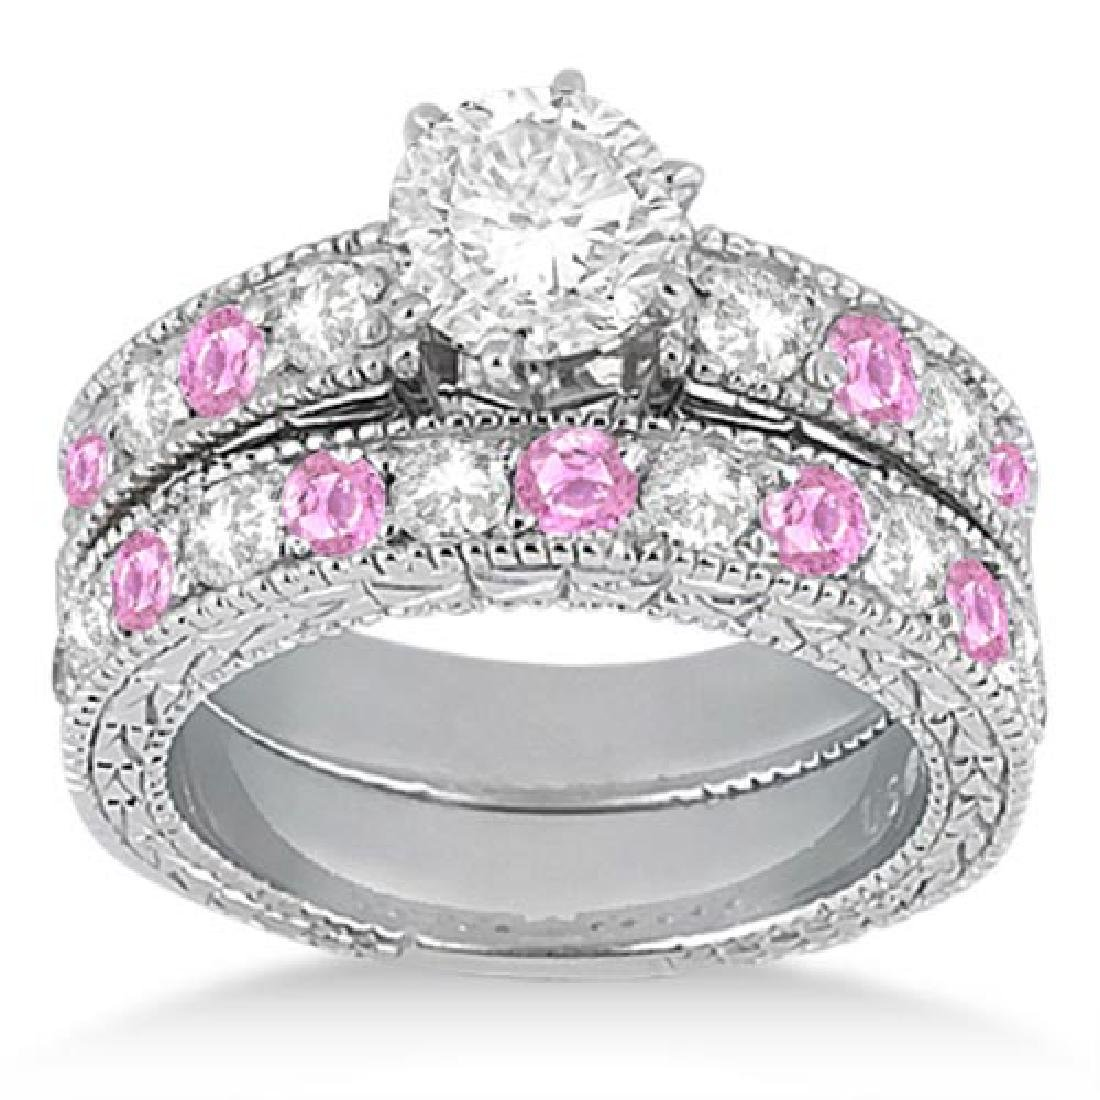 Antique Diamond and Pink Sapphire Bridal Set 14k White